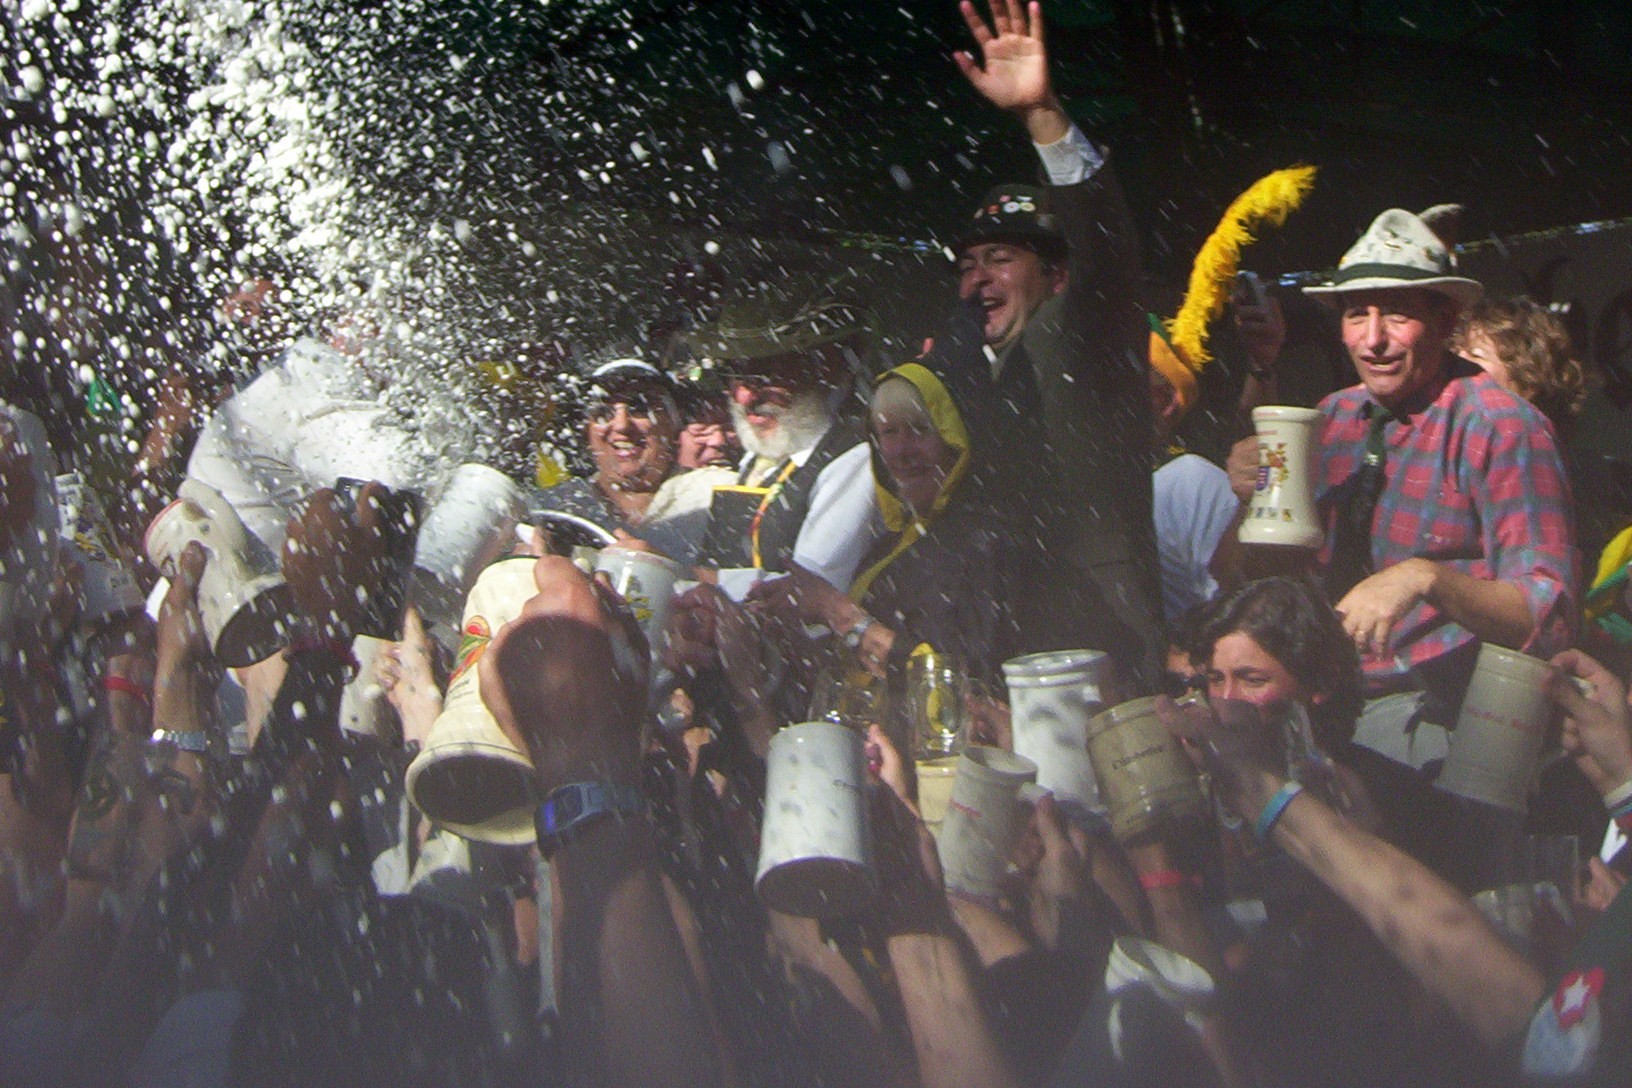 https://i2.wp.com/upload.wikimedia.org/wikipedia/commons/2/22/Oktoberfest_VGBelgrano.jpg